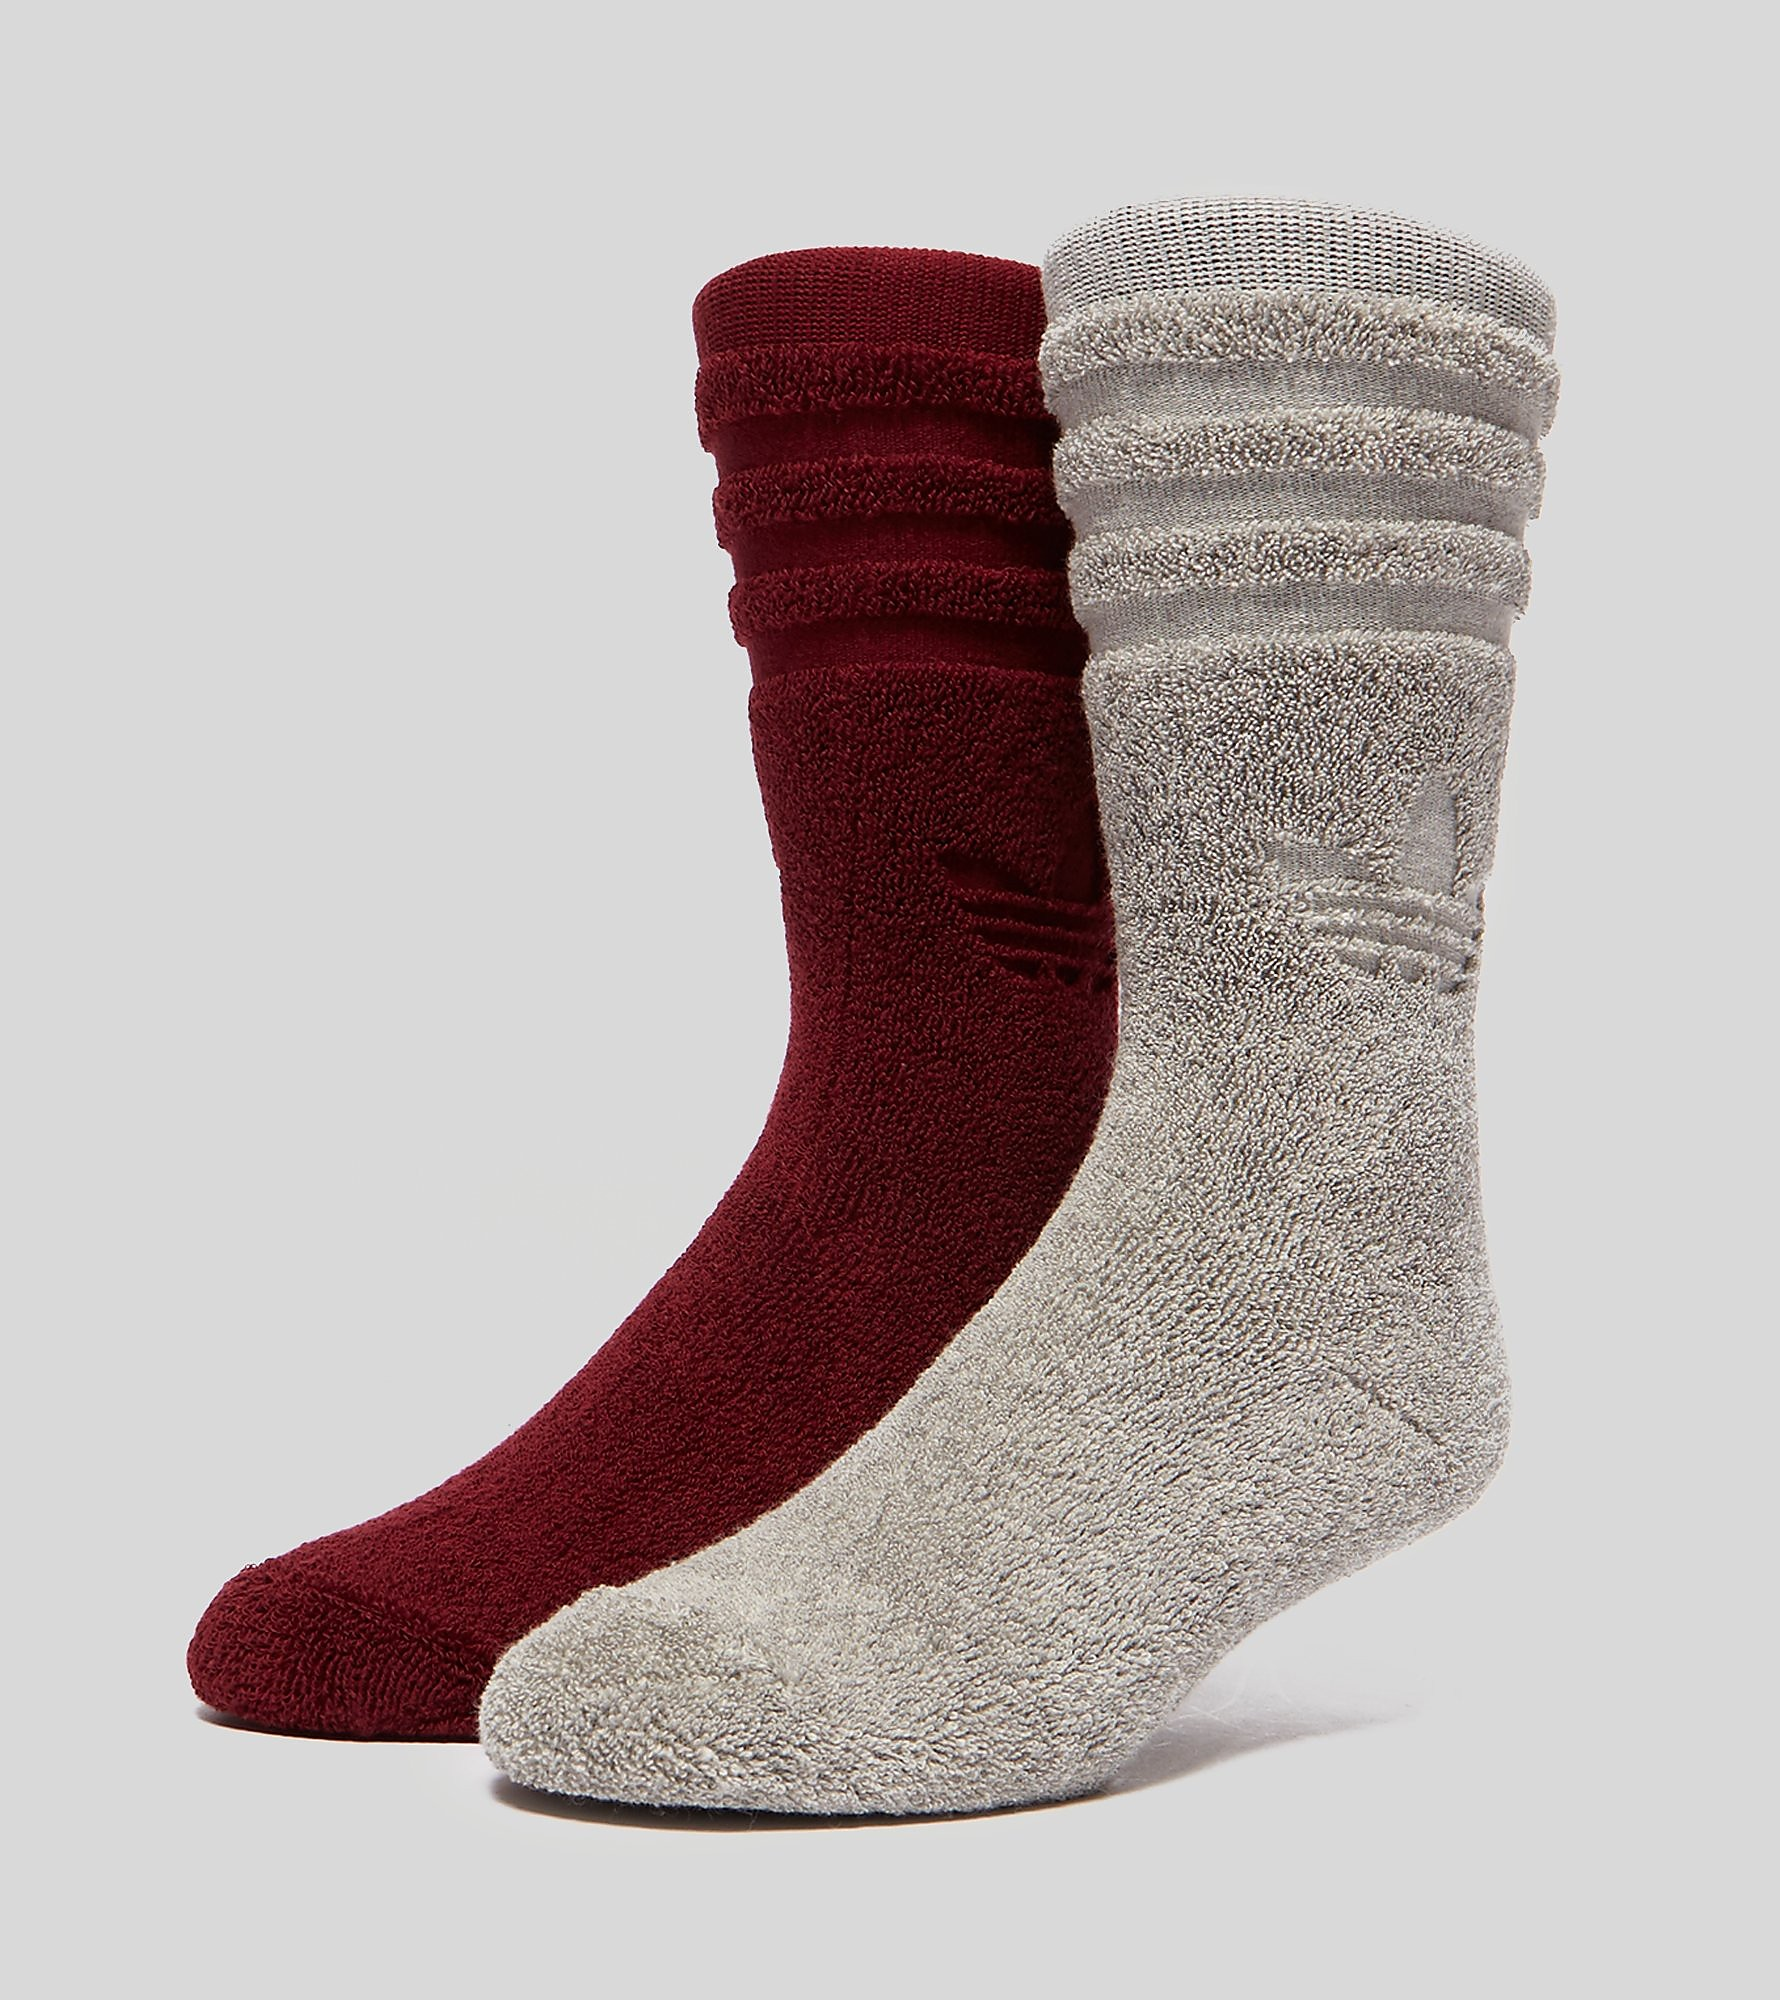 adidas Originals Winter Crew Socks 2 Pack